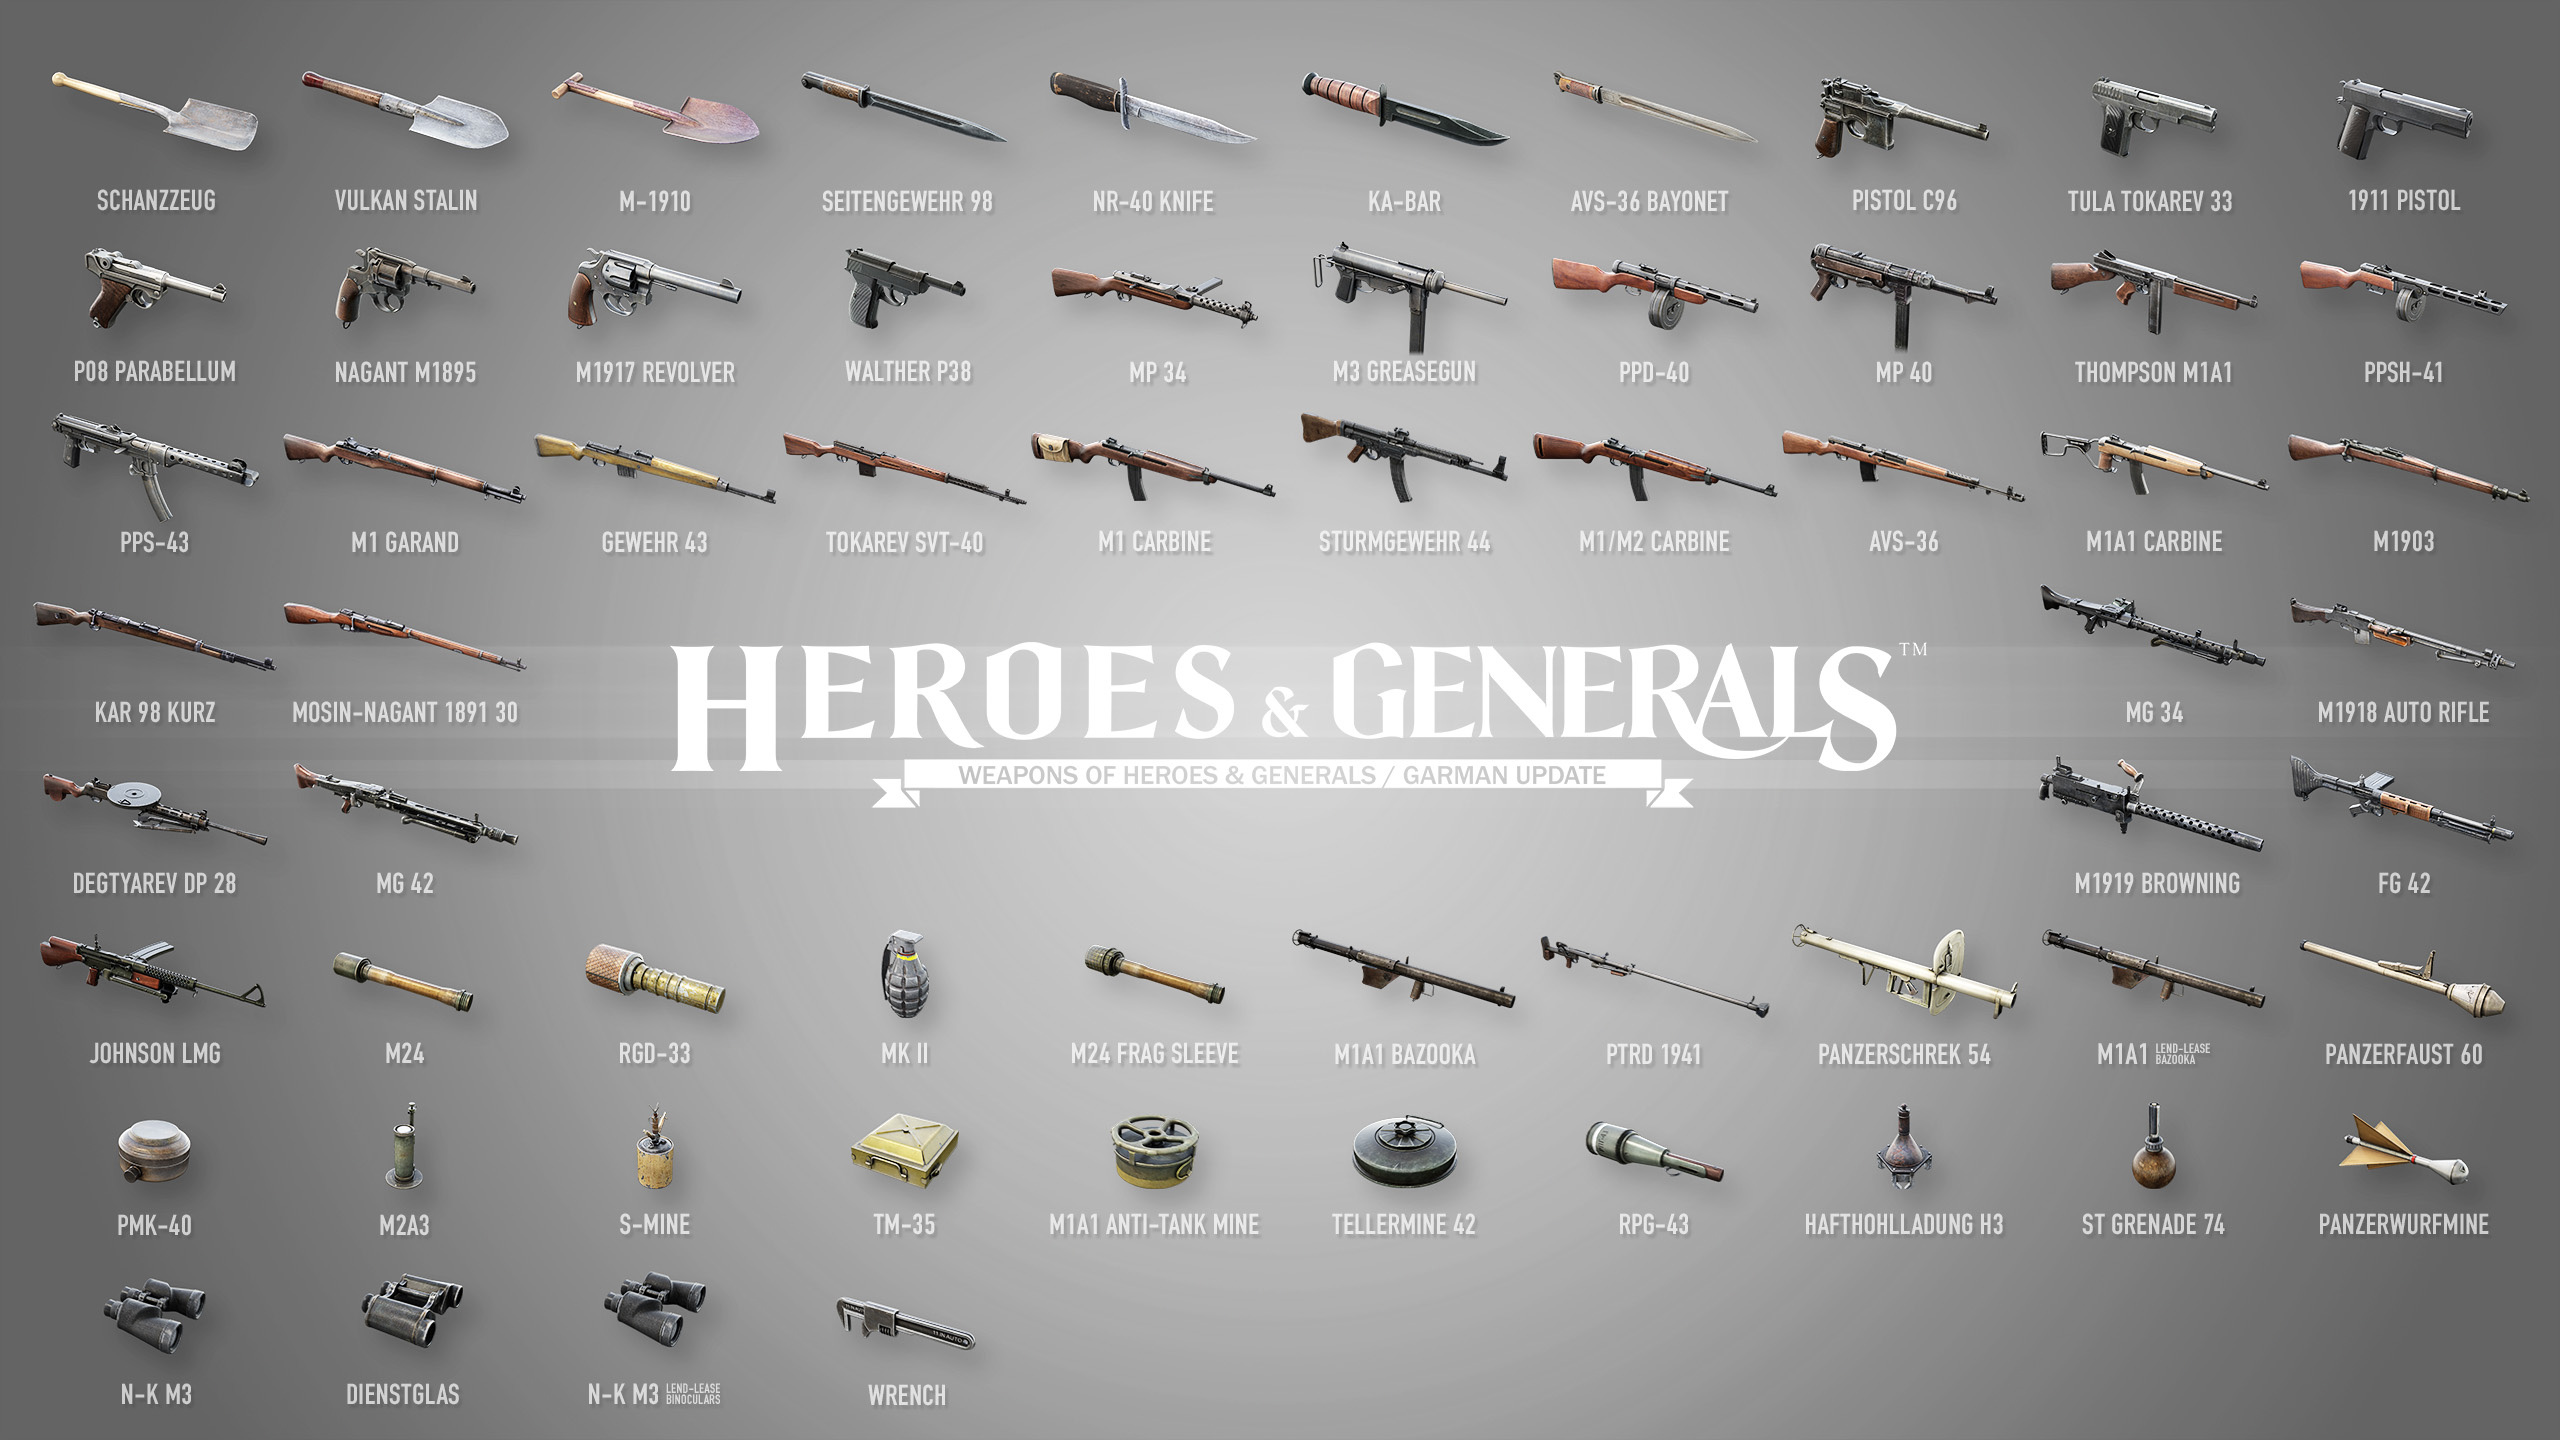 heroes and gernerals